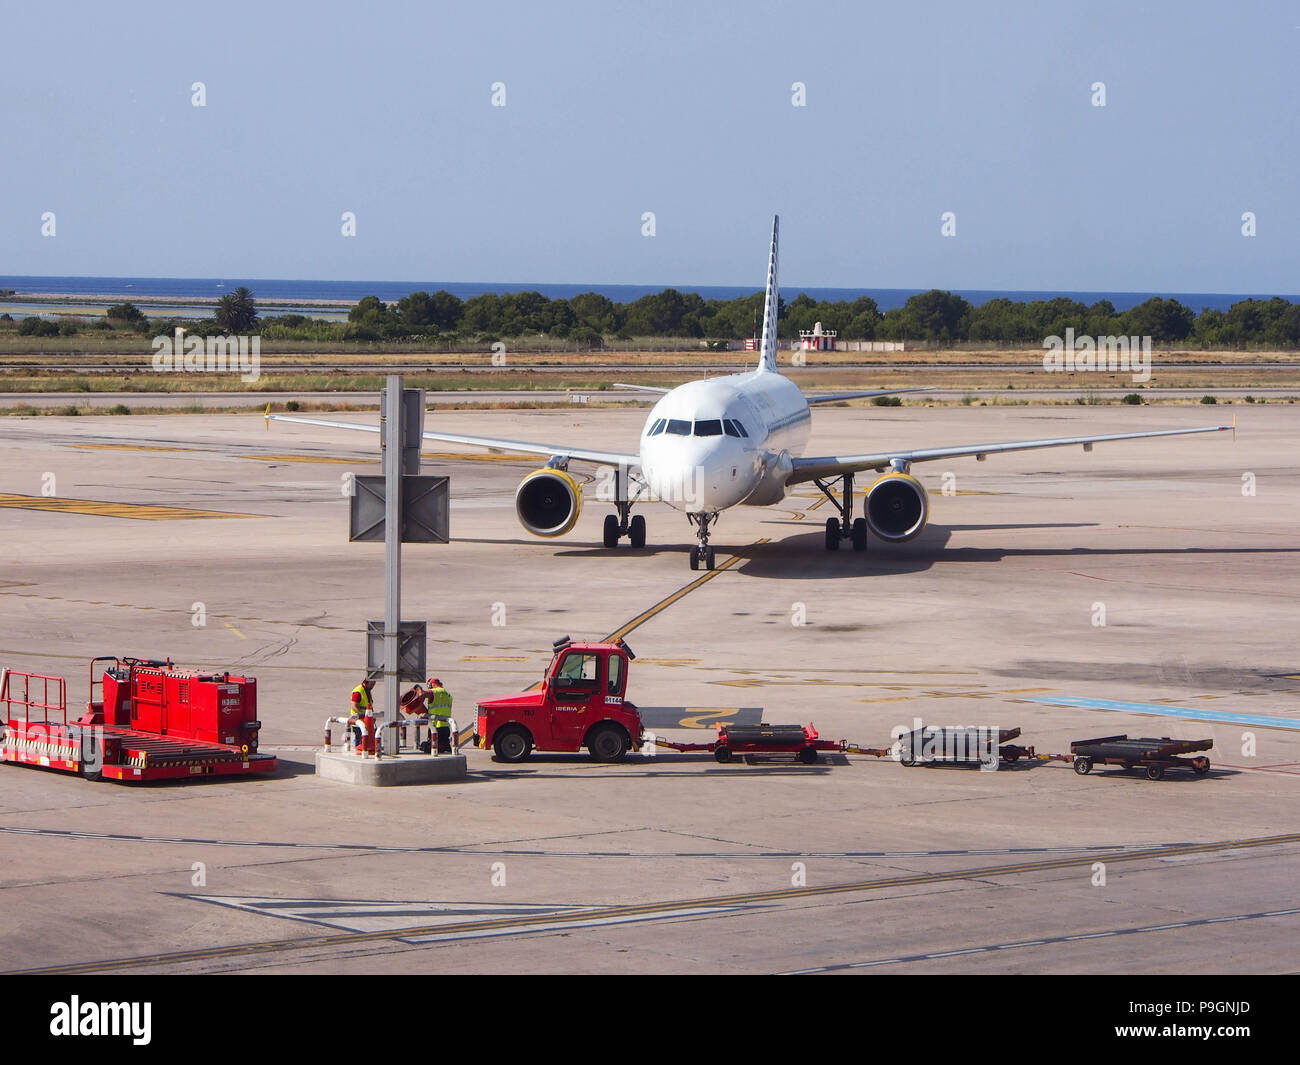 An Airbus A320 belonging to Vueling.com - Stock Image